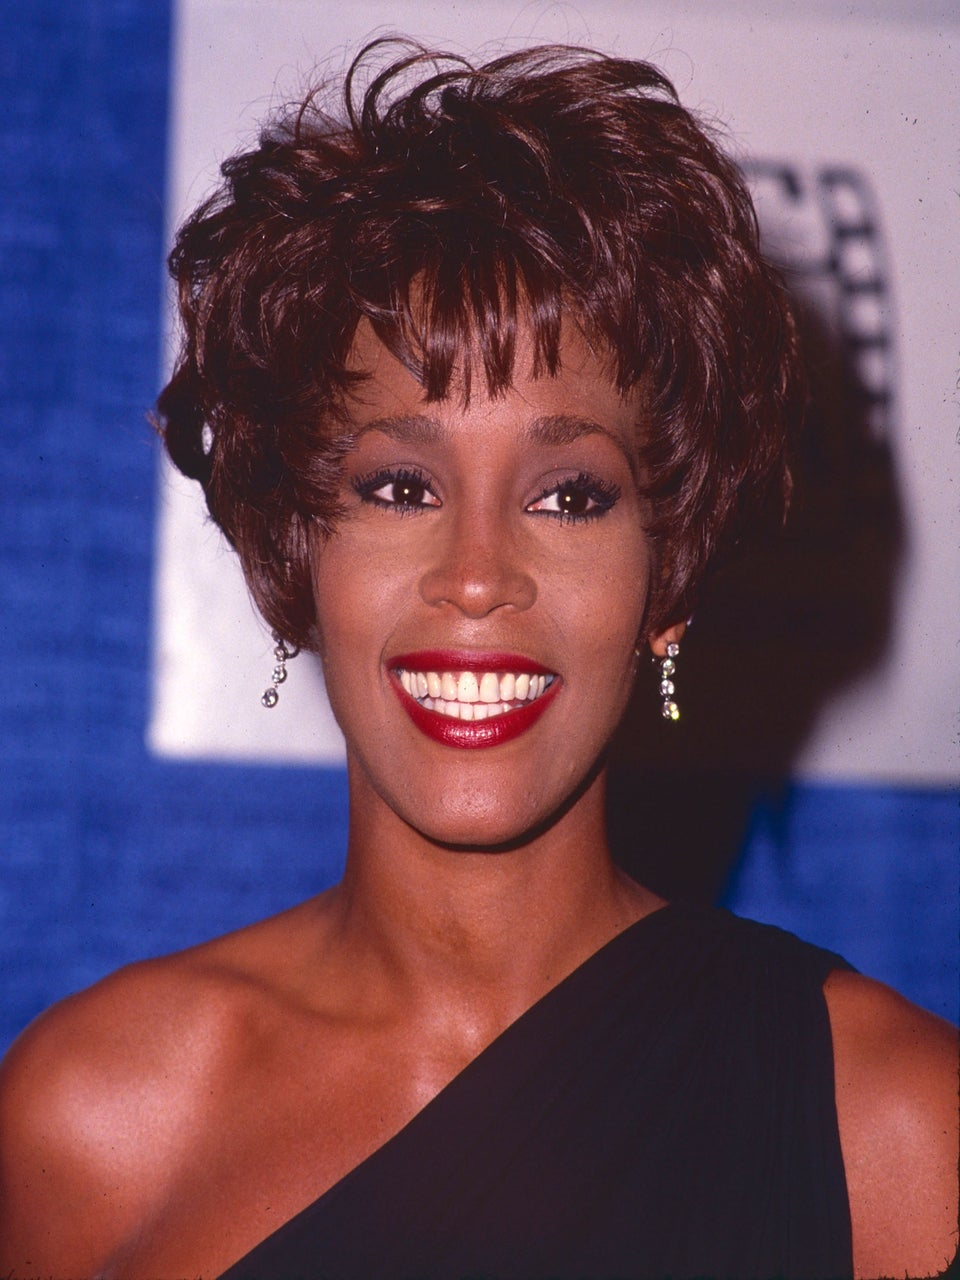 Family-Backed Whitney Houston Documentary Drops First Trailer